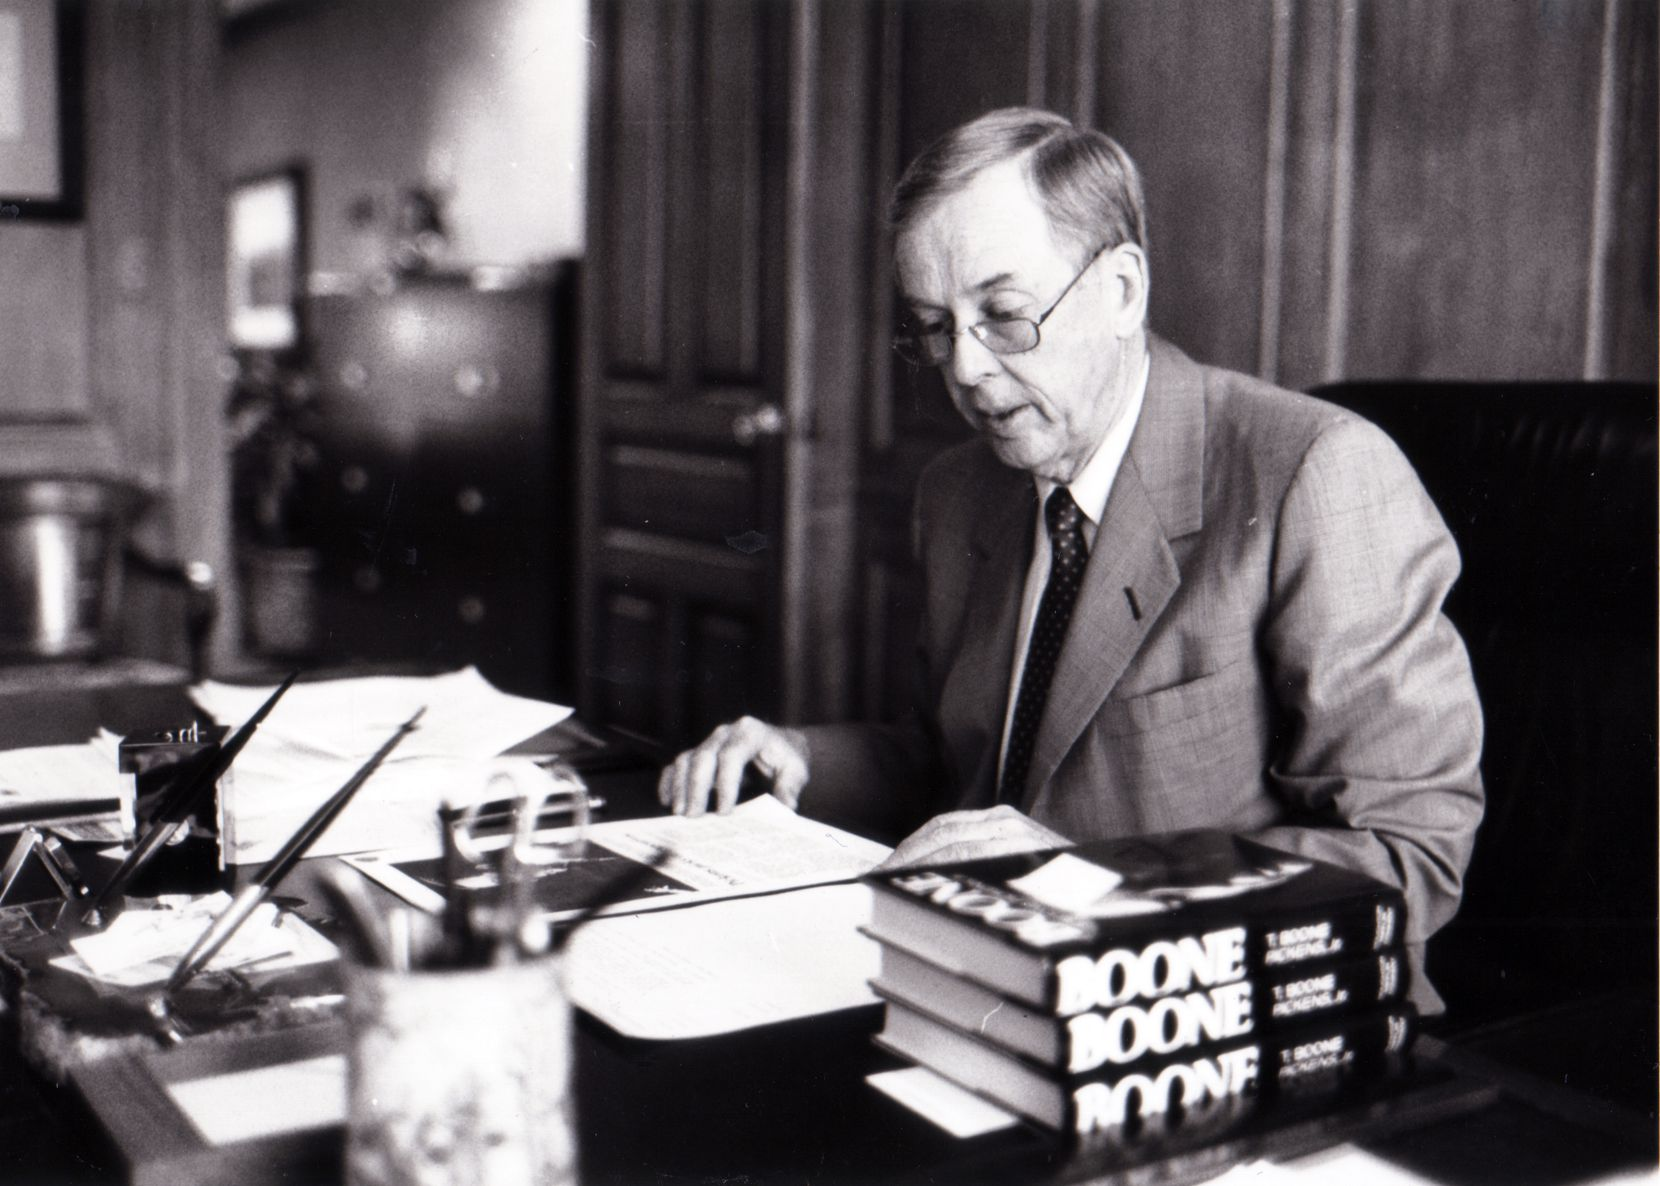 Pickens was photographed in his Amarillo office in 2005 for a High Profile piece in The News..